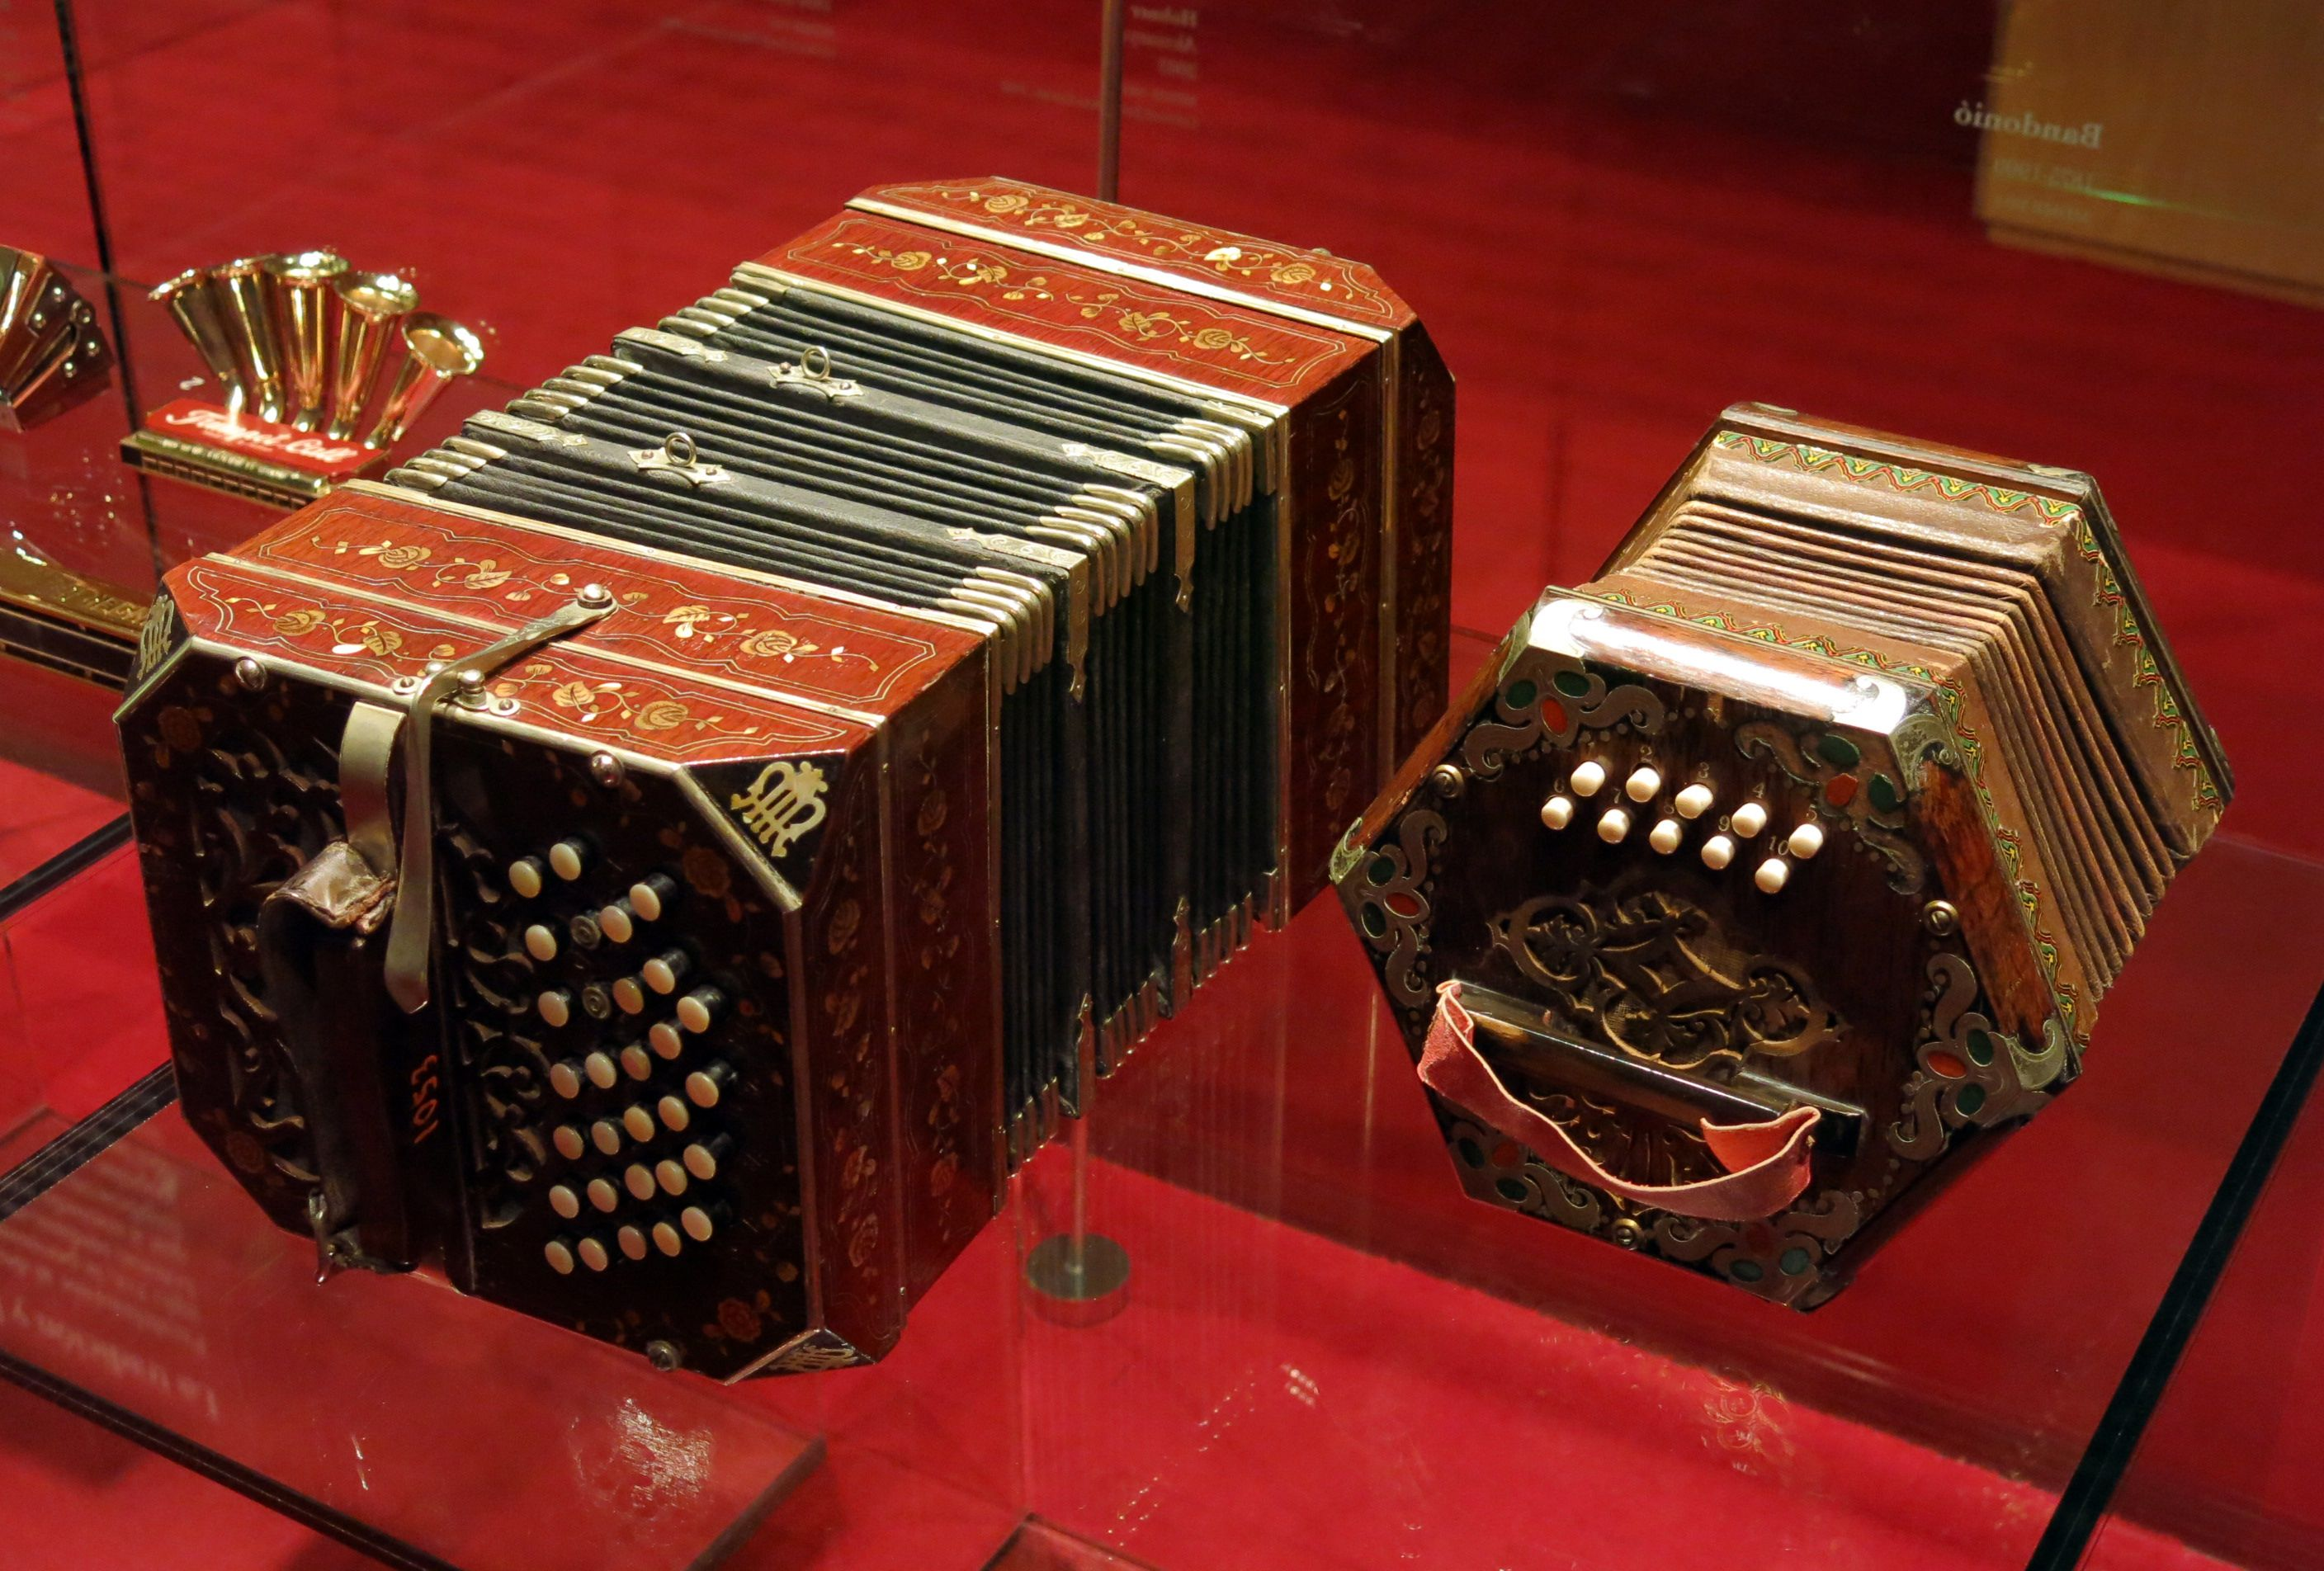 Bandoneon & Concertina, Music Museum in Barcelona